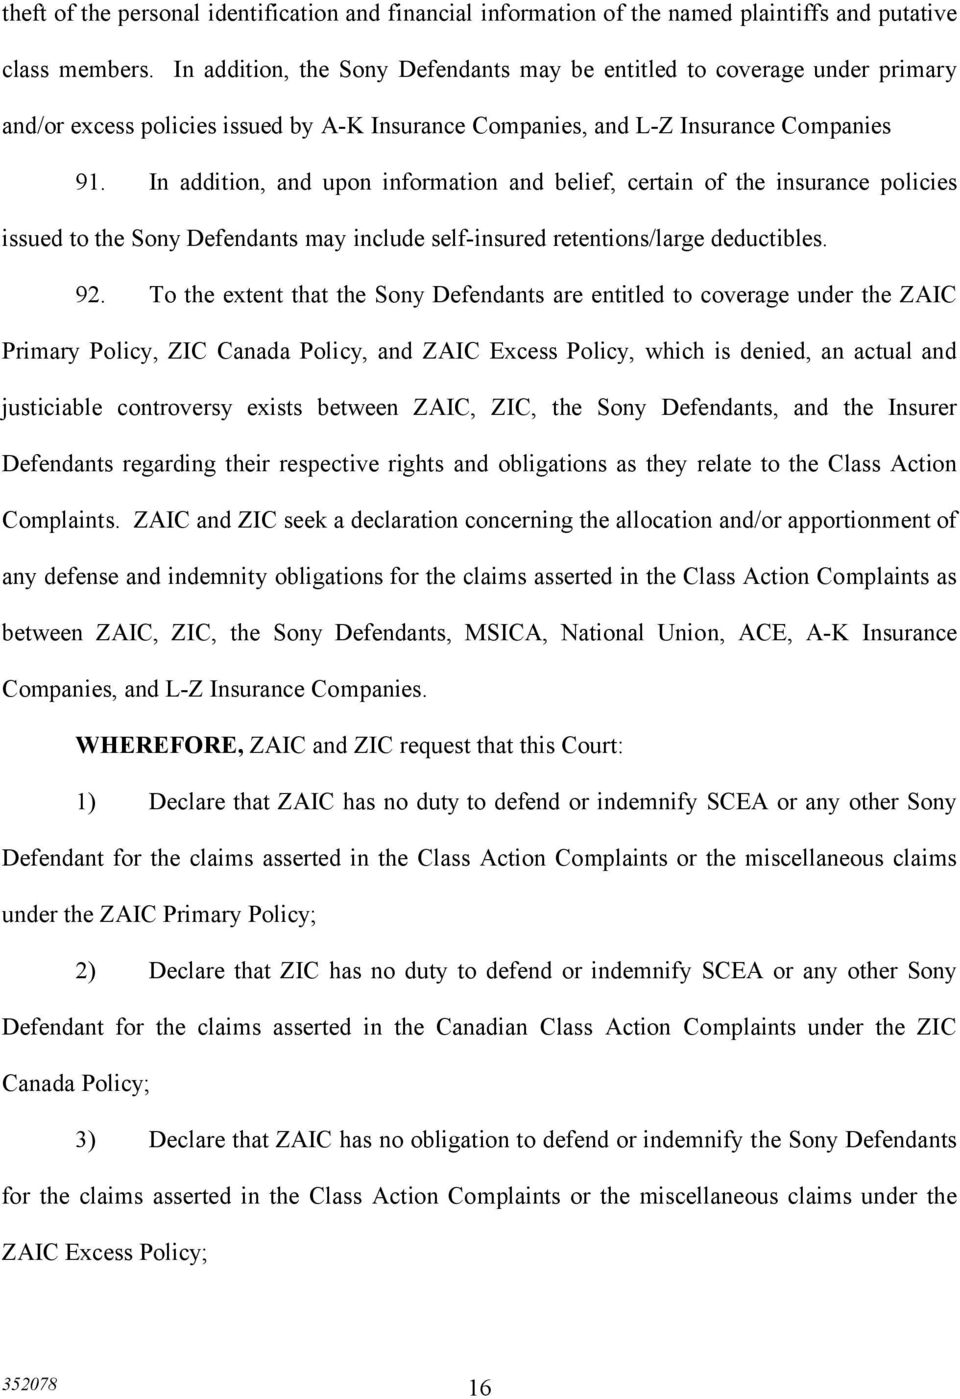 In addition, and upon information and belief, certain of the insurance policies issued to the Sony Defendants may include self-insured retentions/large deductibles. 92.